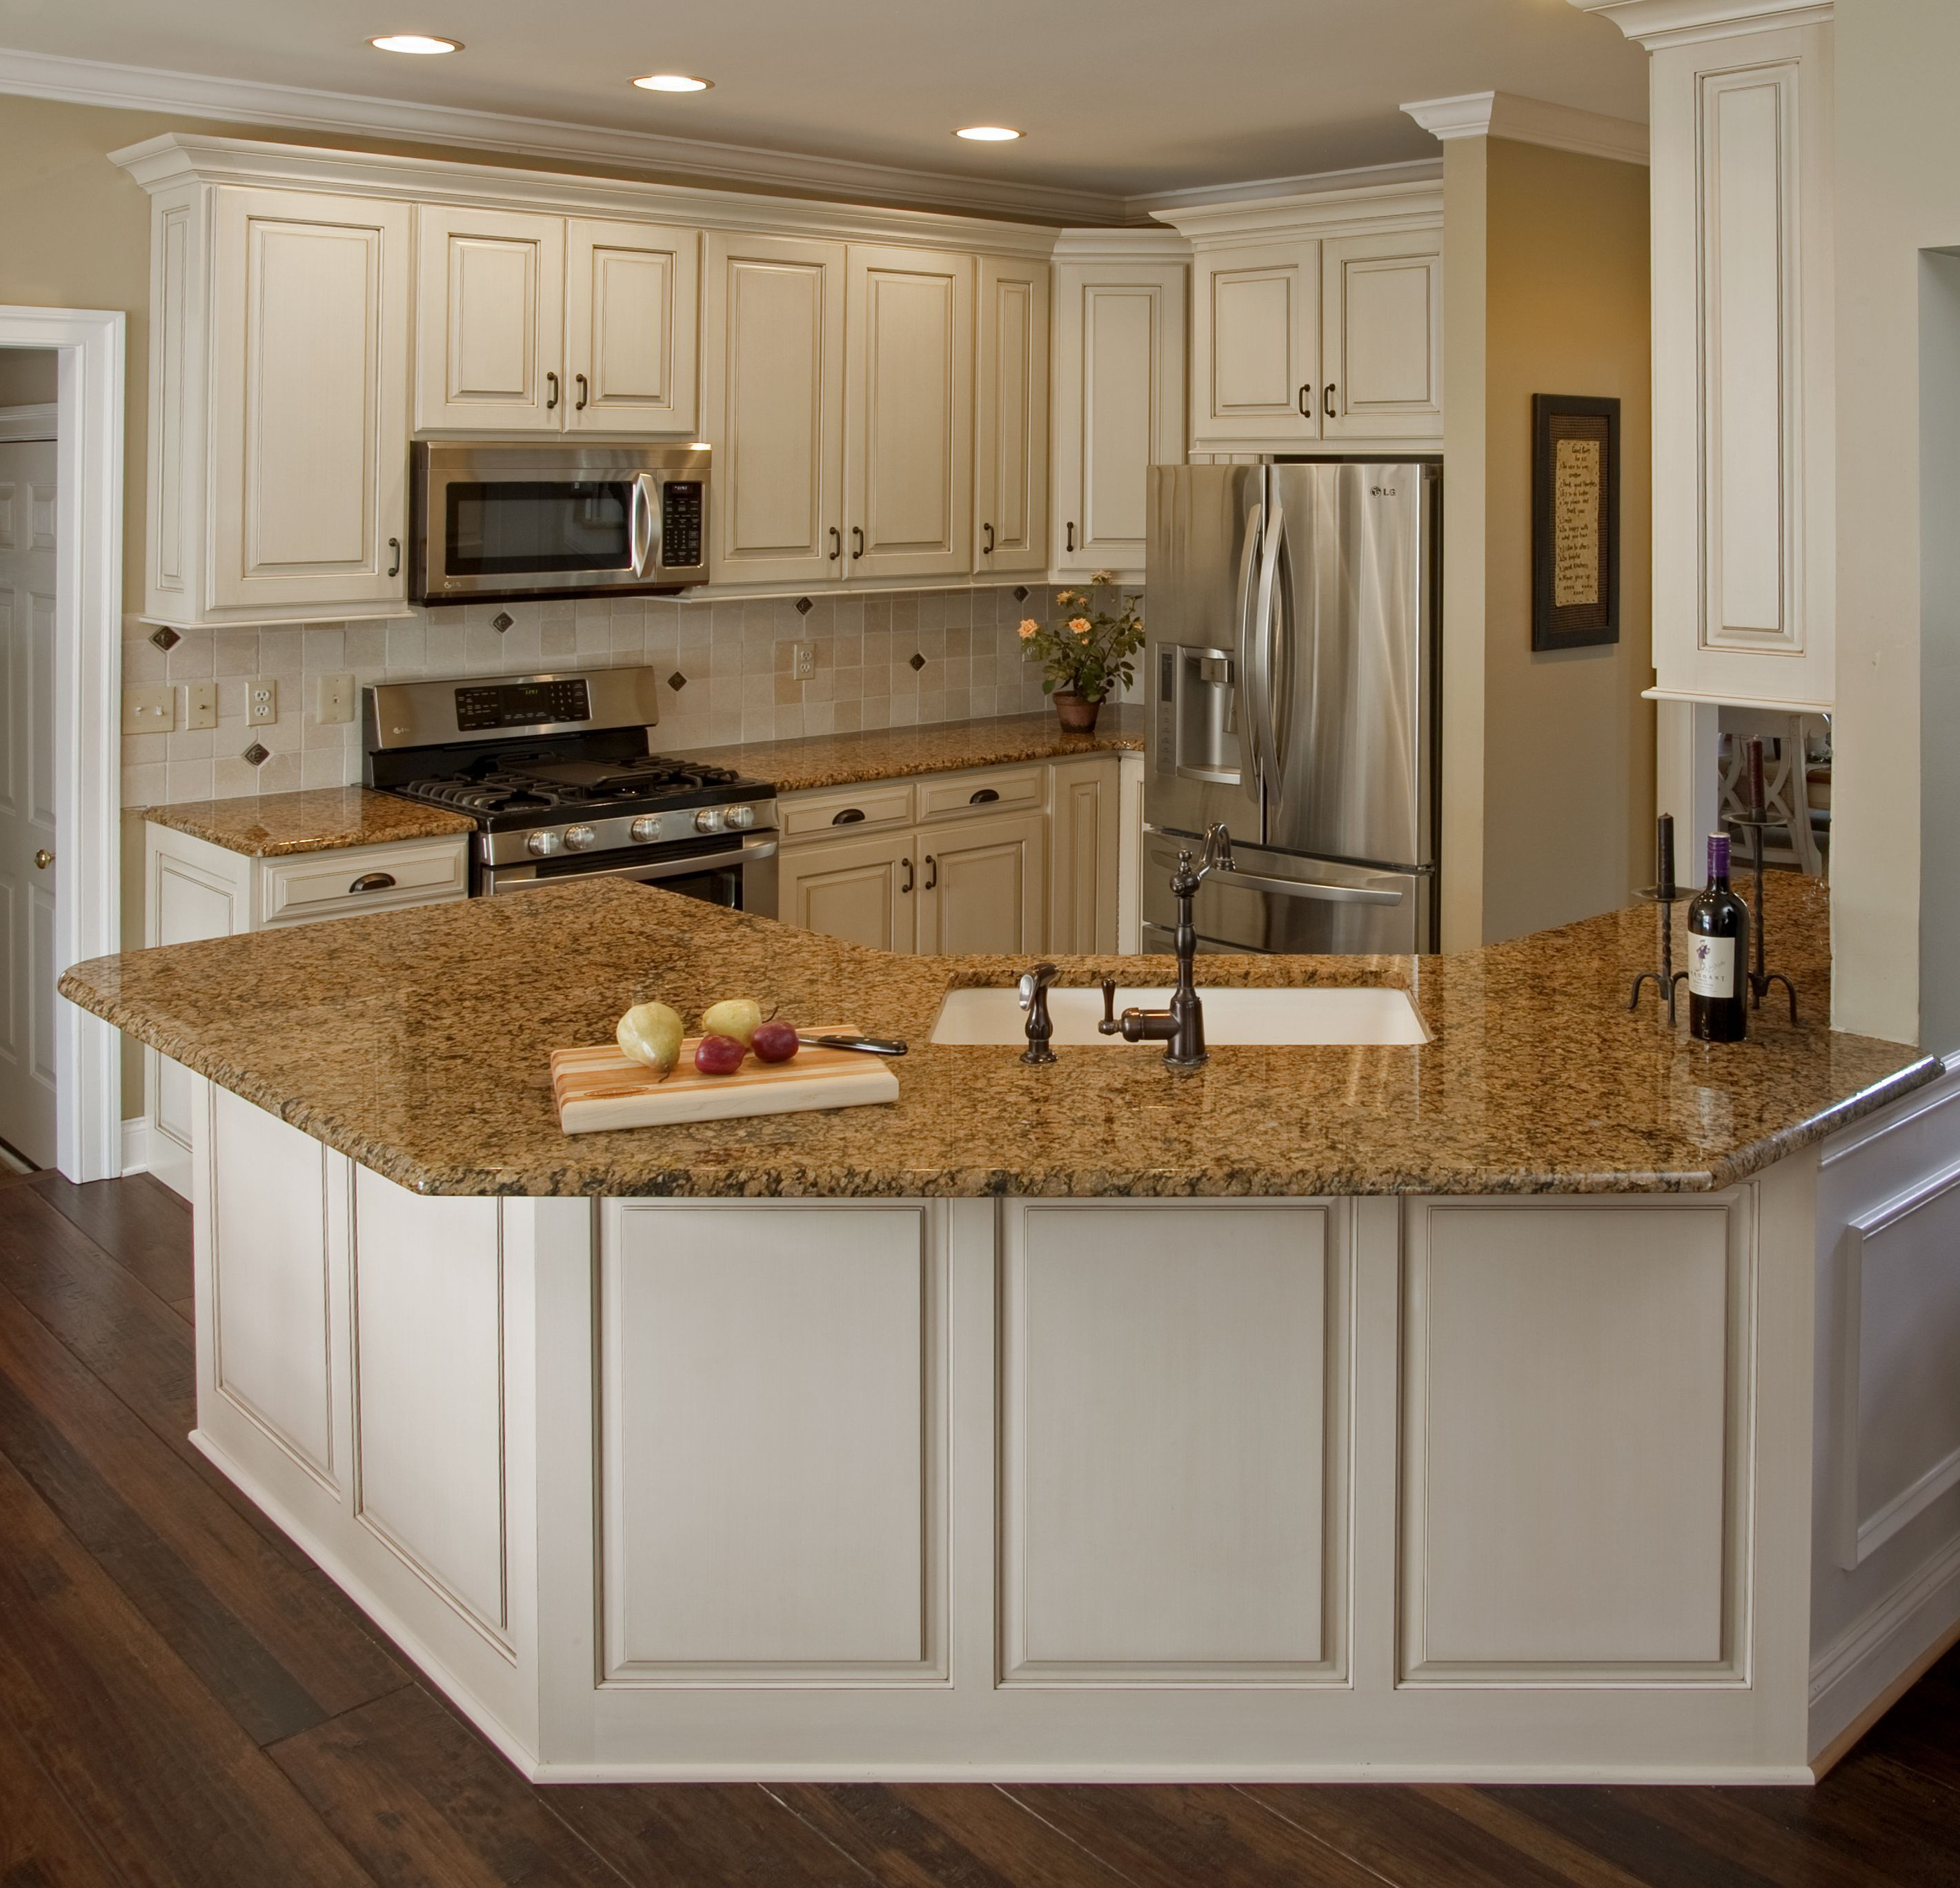 Kitchen Resurface Cabinets Inspiring Kitchen Decor Using Cabinet Refacing Cost On